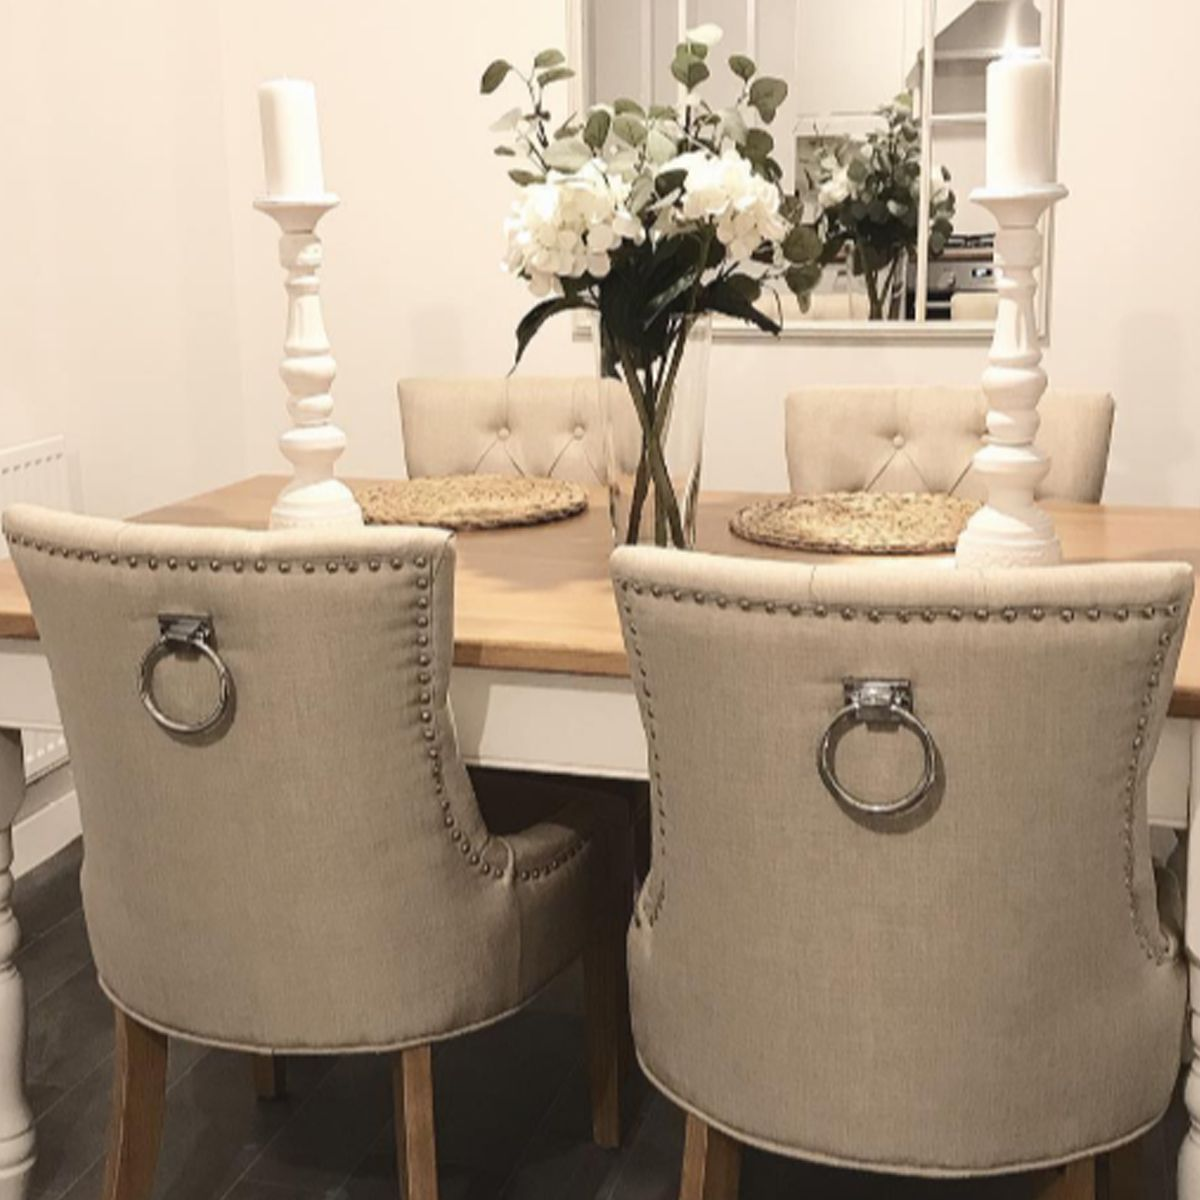 Verona Dining Chair In Cream Linen With Chrome Knocker And Oak Legs Dining Table In Living Room Cream Dining Room Luxury Dining Room